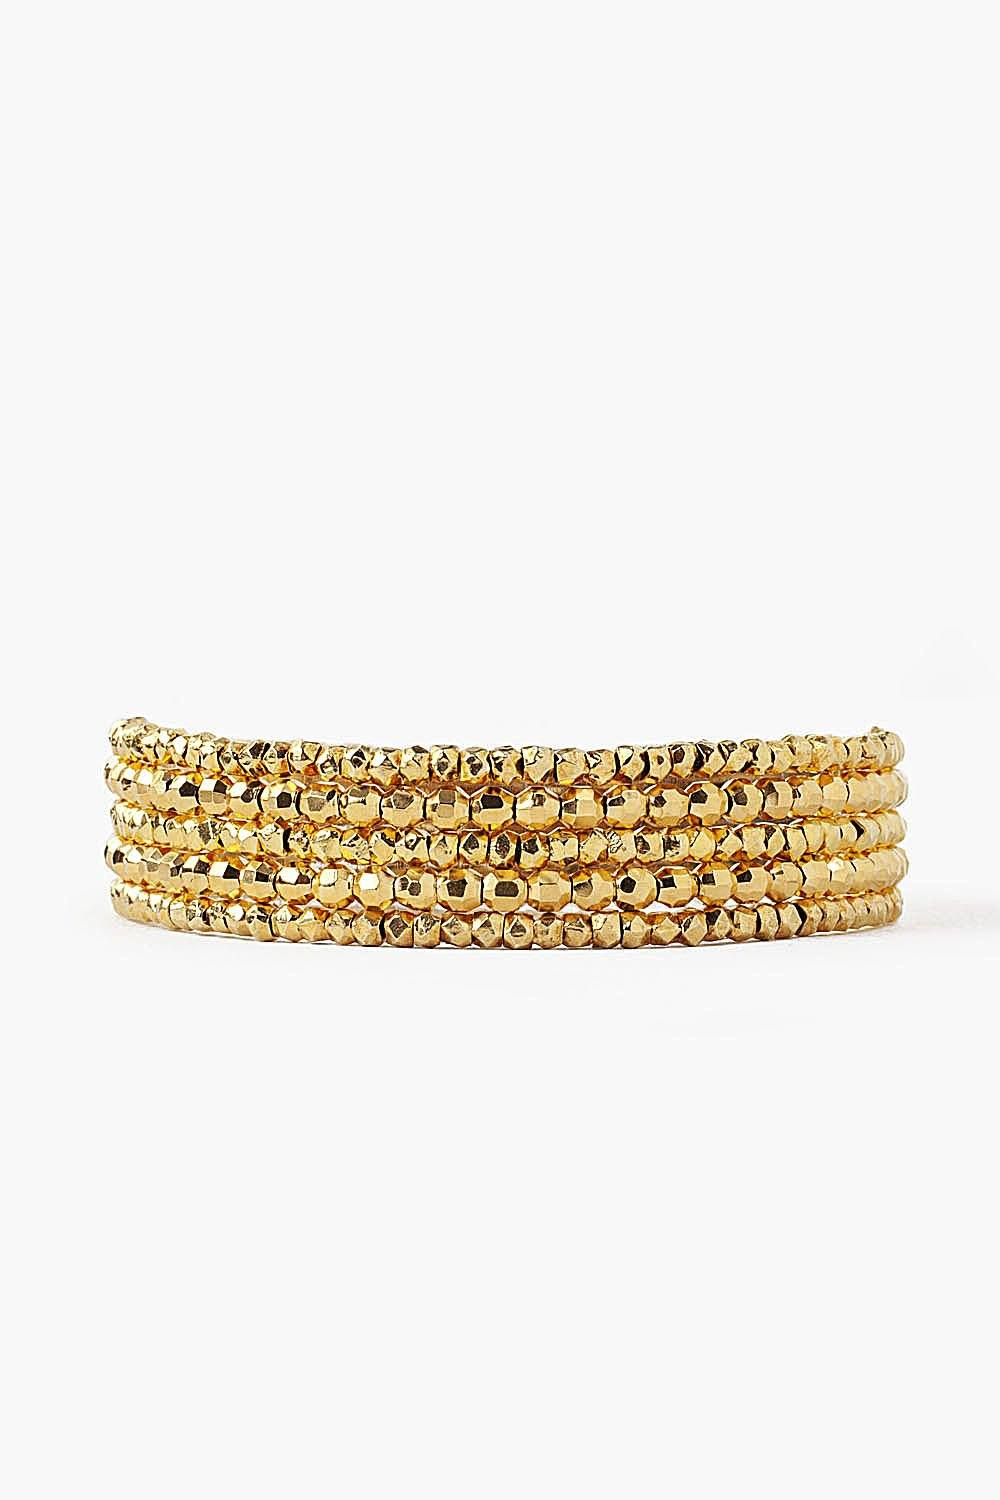 Yellow Gold Naked Wrap Bracelet